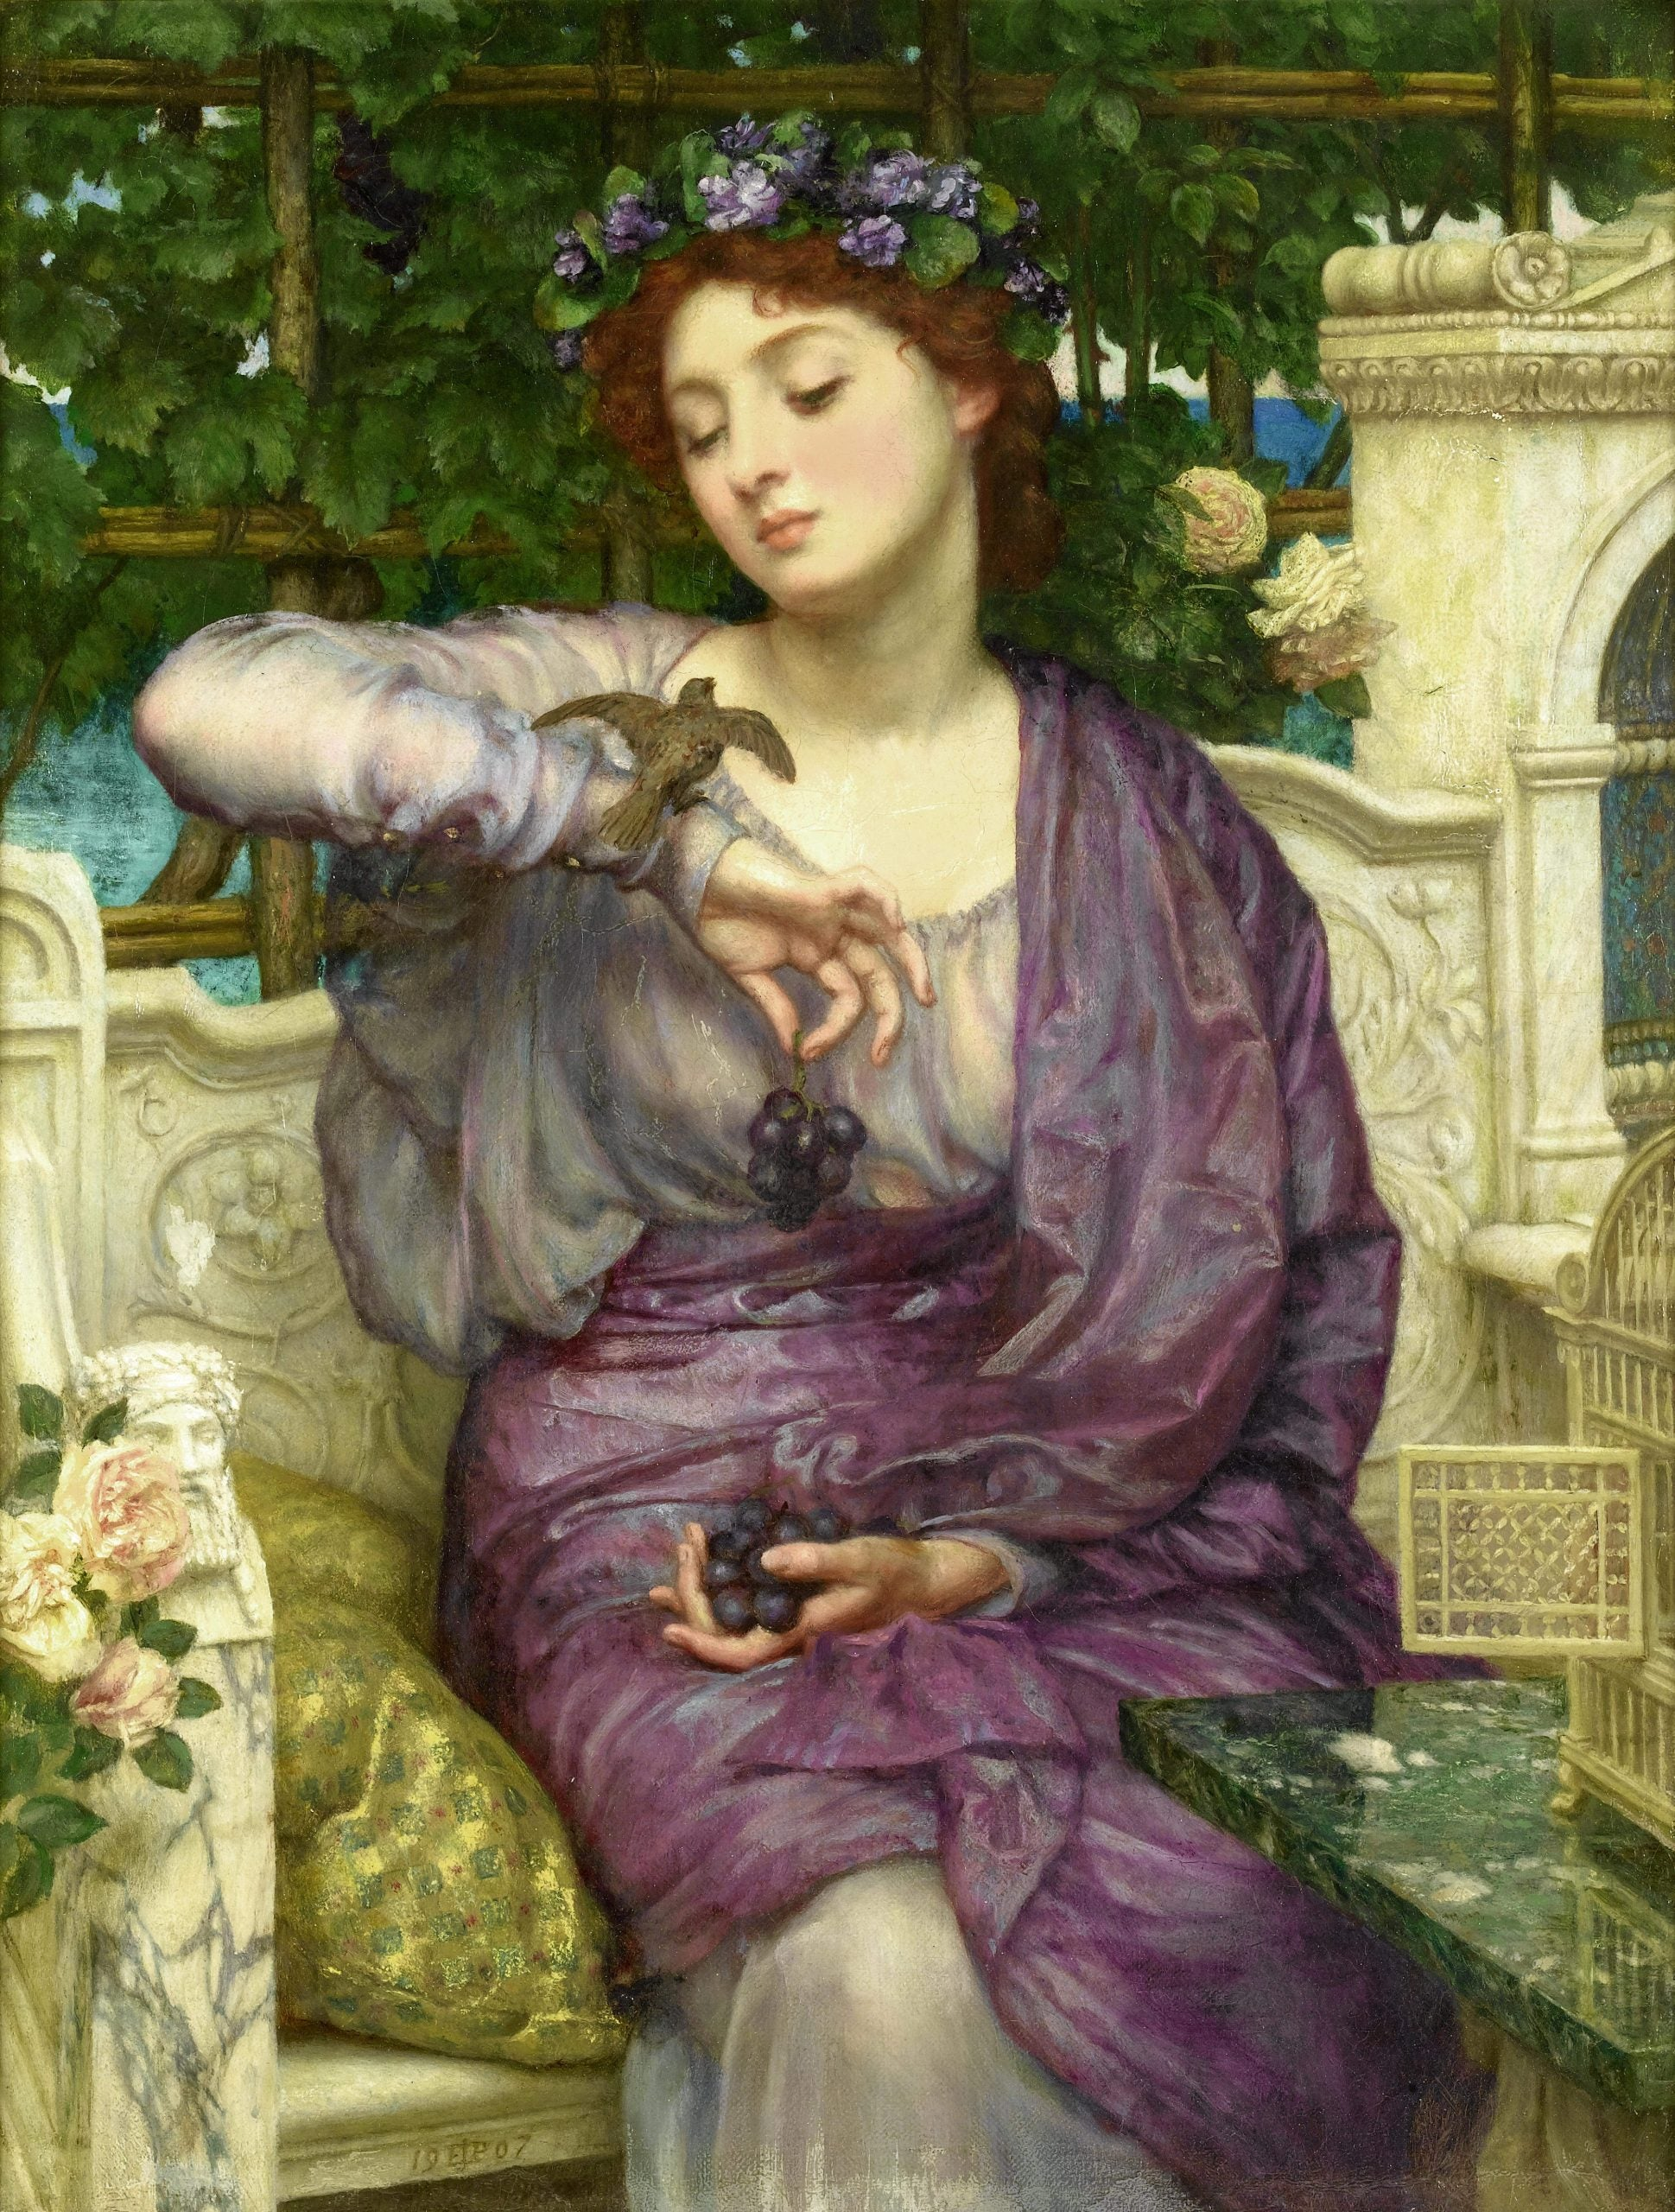 Revisiting Catullus, from political battles to Roman contraception